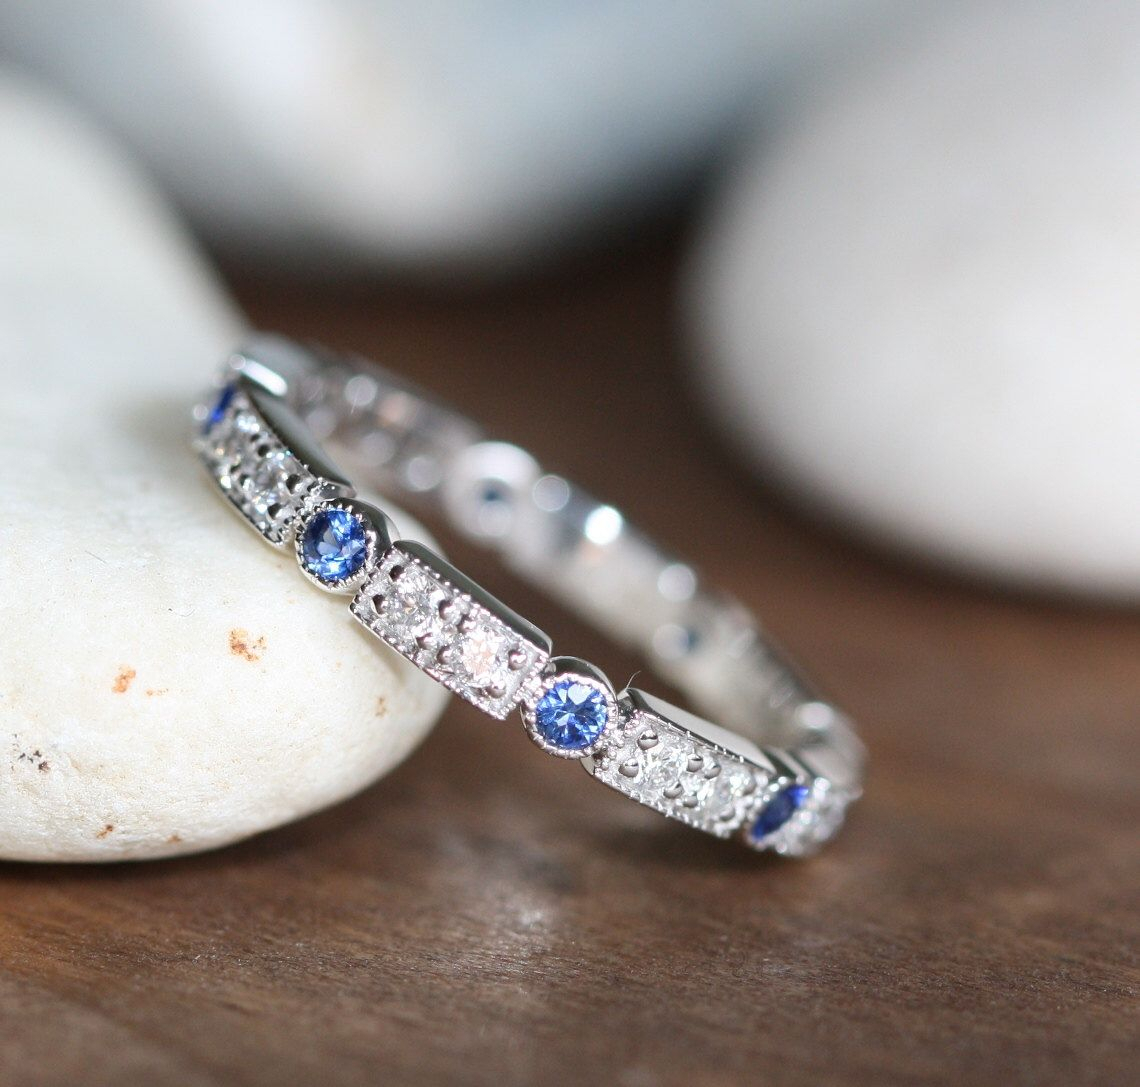 Art Deco Inspired Sapphire Diamond Eternity Band In 14k In Recent Diamond Art Deco Inspired Anniversary Bands In White Gold (View 5 of 25)